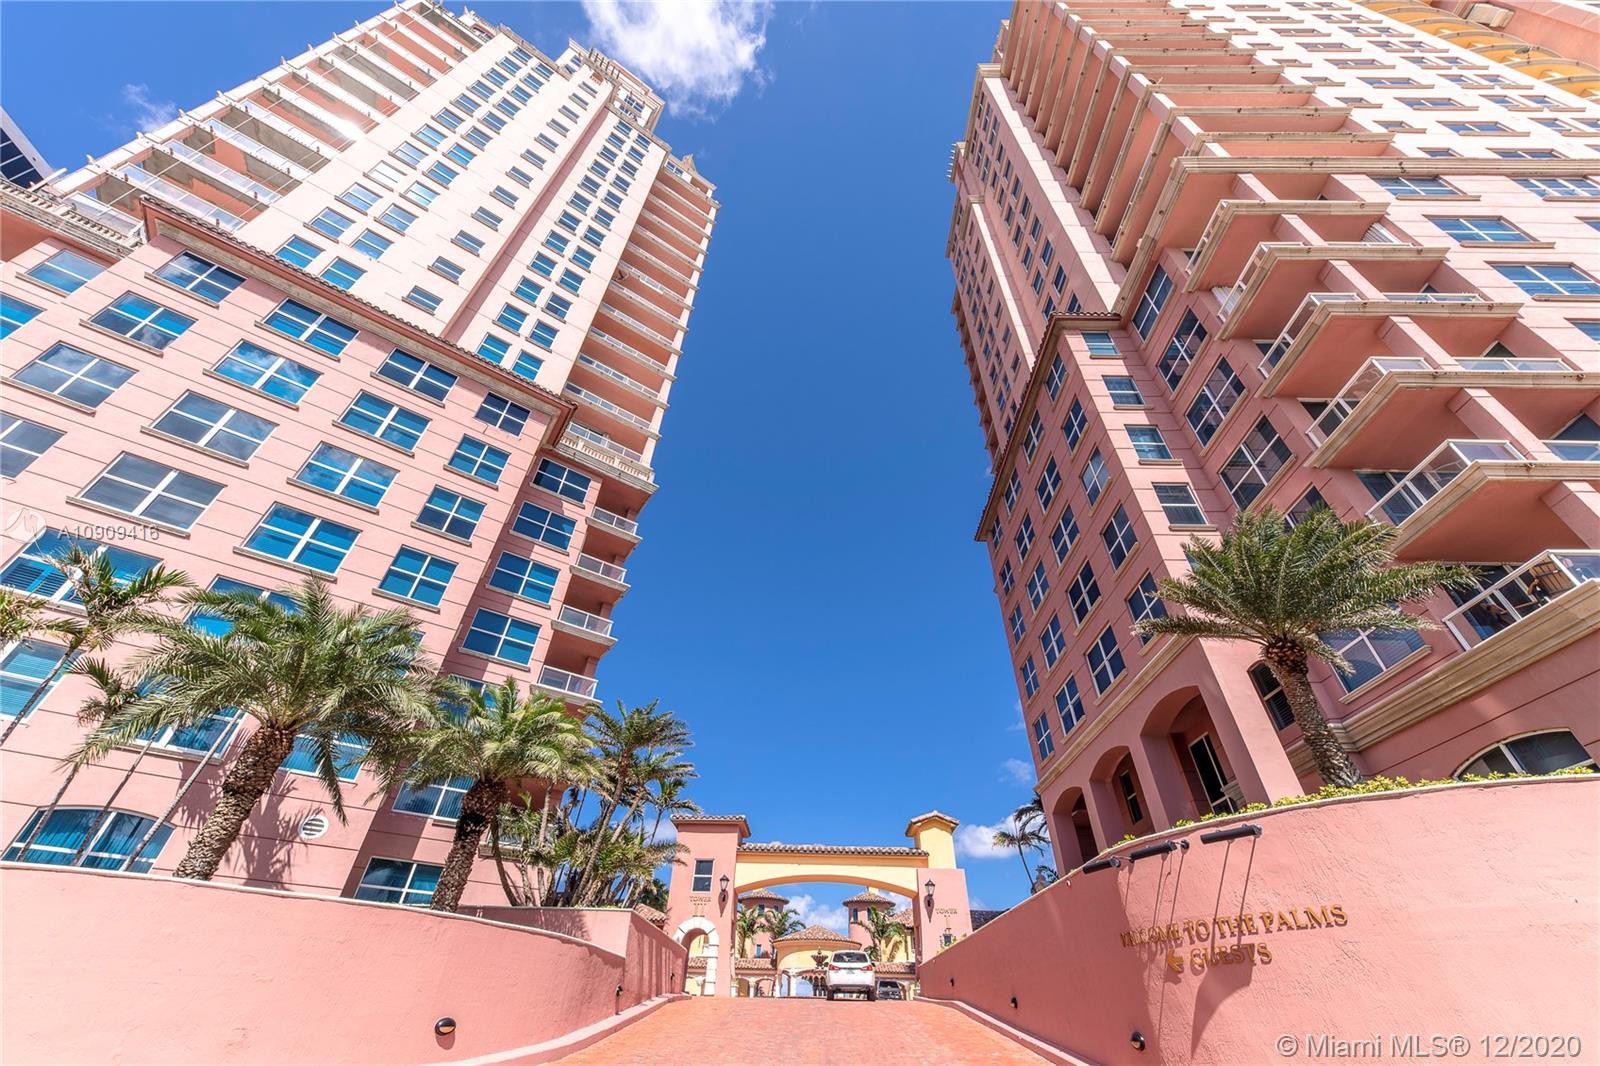 Proudly presenting, this one of a kind (custom) double unit at The Palms in Tower II. Recently updated, 19A/D gives a light and bright feeling as soon as you step out of the elevator. Enjoy direct ocean views of beautiful Fort Lauderdale beach and the ICW from two oversized terraces on each side of the unit. This 4 bedroom and 4.5 bath lifestyle, has an open floor-plan and massive great room with over 4000sqft of living! Huge Master suite! Large bedrooms. Gourmet kitchen. NO OTHER UNIT LIKE THIS IN THE PALMS. Extremely secure and private. Next door to Auberge, you can walk to restaurants and bars within minutes.